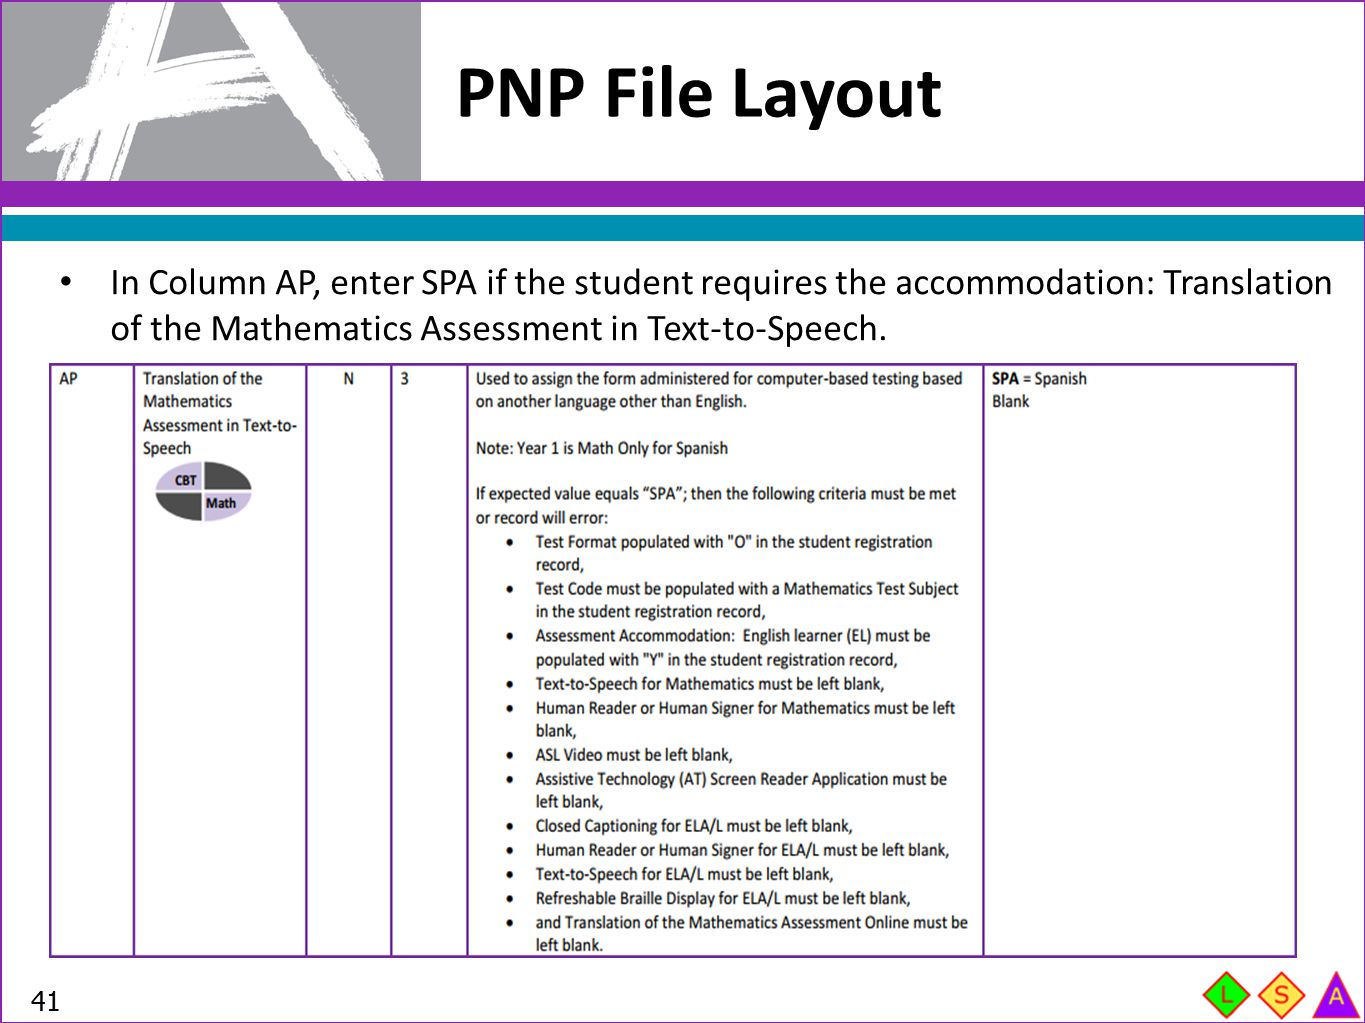 PNP File Layout In Column AP, enter SPA if the student requires the accommodation: Translation of the Mathematics Assessment in Text-to-Speech.